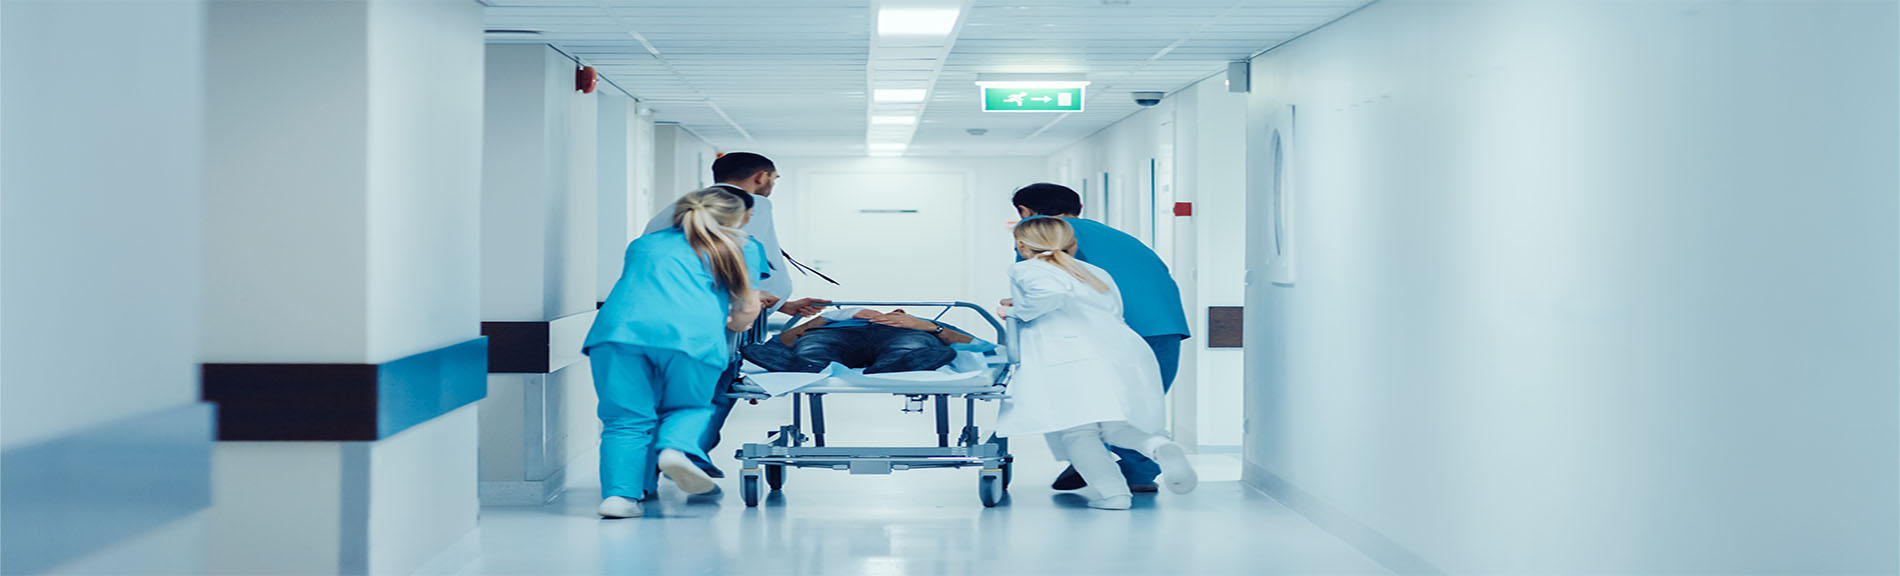 Preventing Potentially Avoidable Risk Events in Healthcare